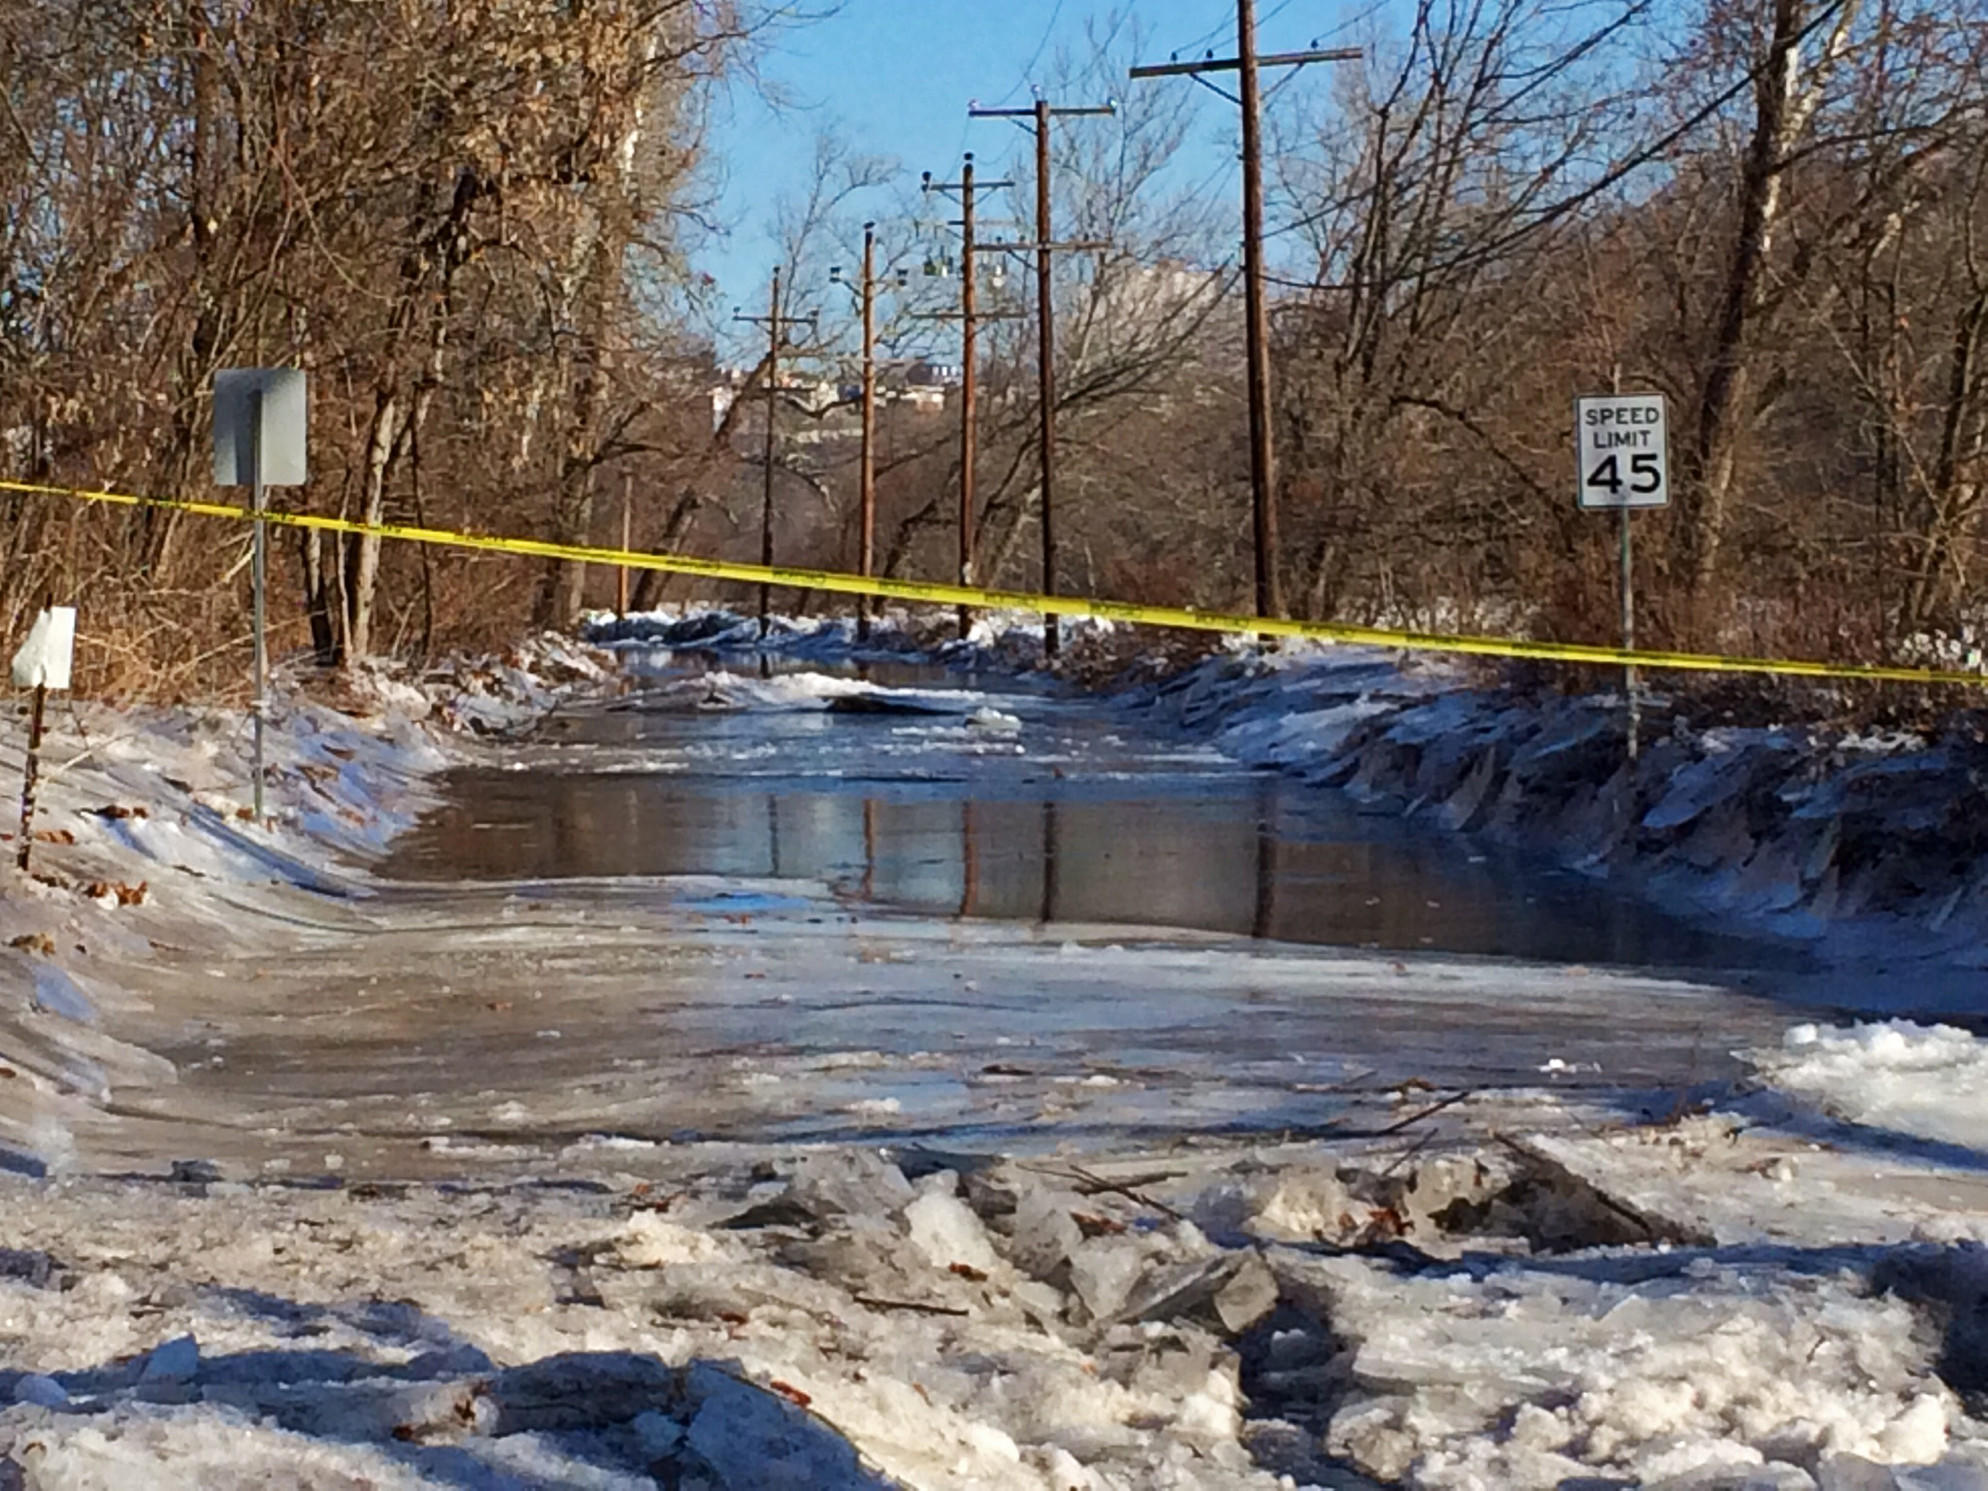 An ice jam on the Lehigh River has forced police to close a portion of Lehigh Drive near the Old Glendon Bridge. Ice jams, combined with heavy rain forecast for this weekend, will create the potential for flooding.